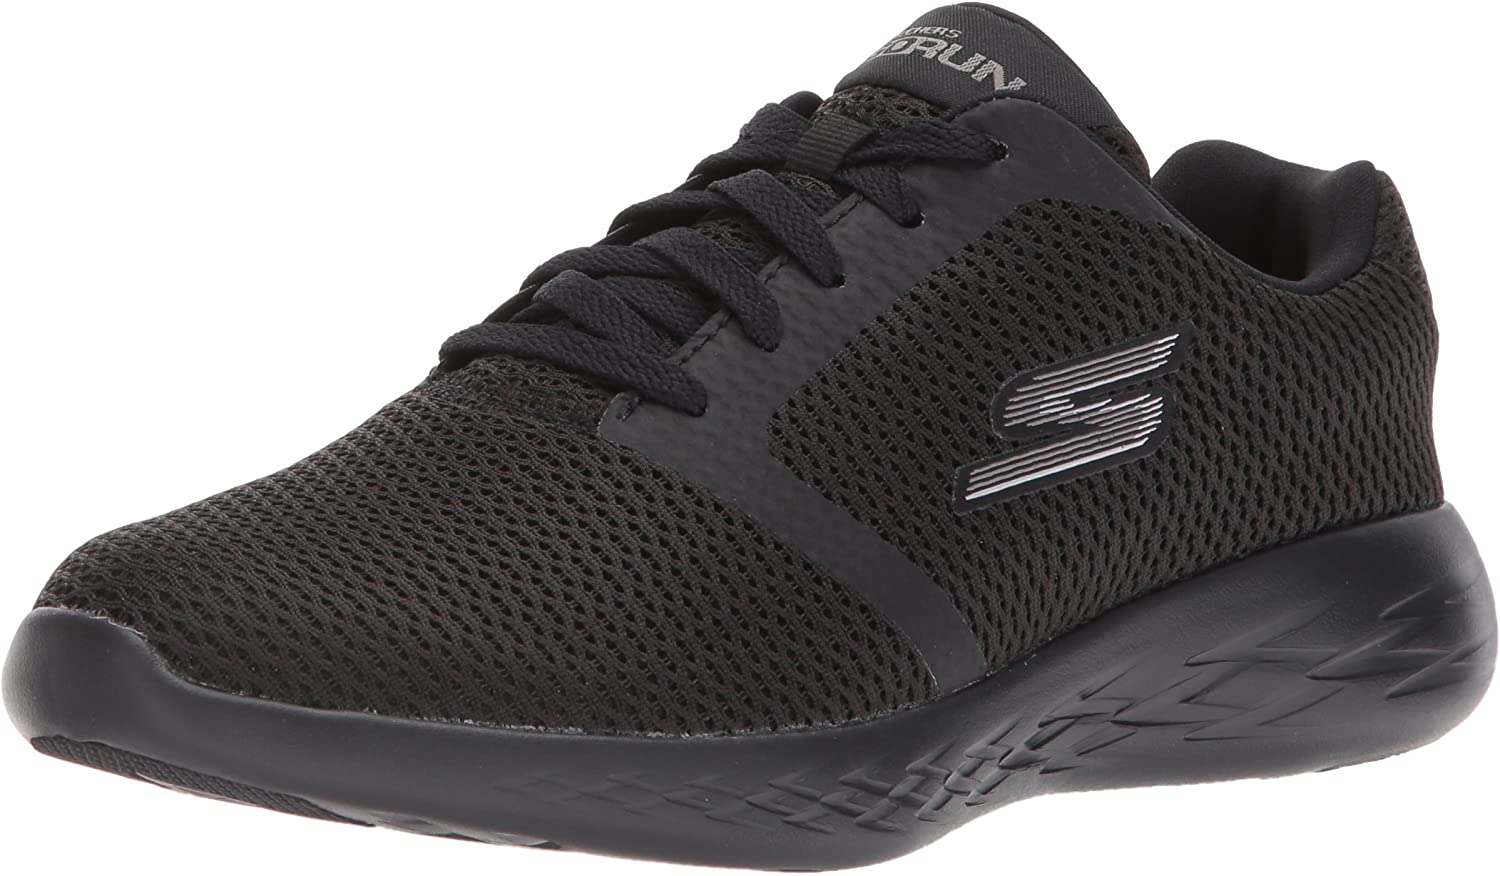 Salto ancla silencio  Amazon.com | Skechers Go Run 600-Refine Sneaker | Walking